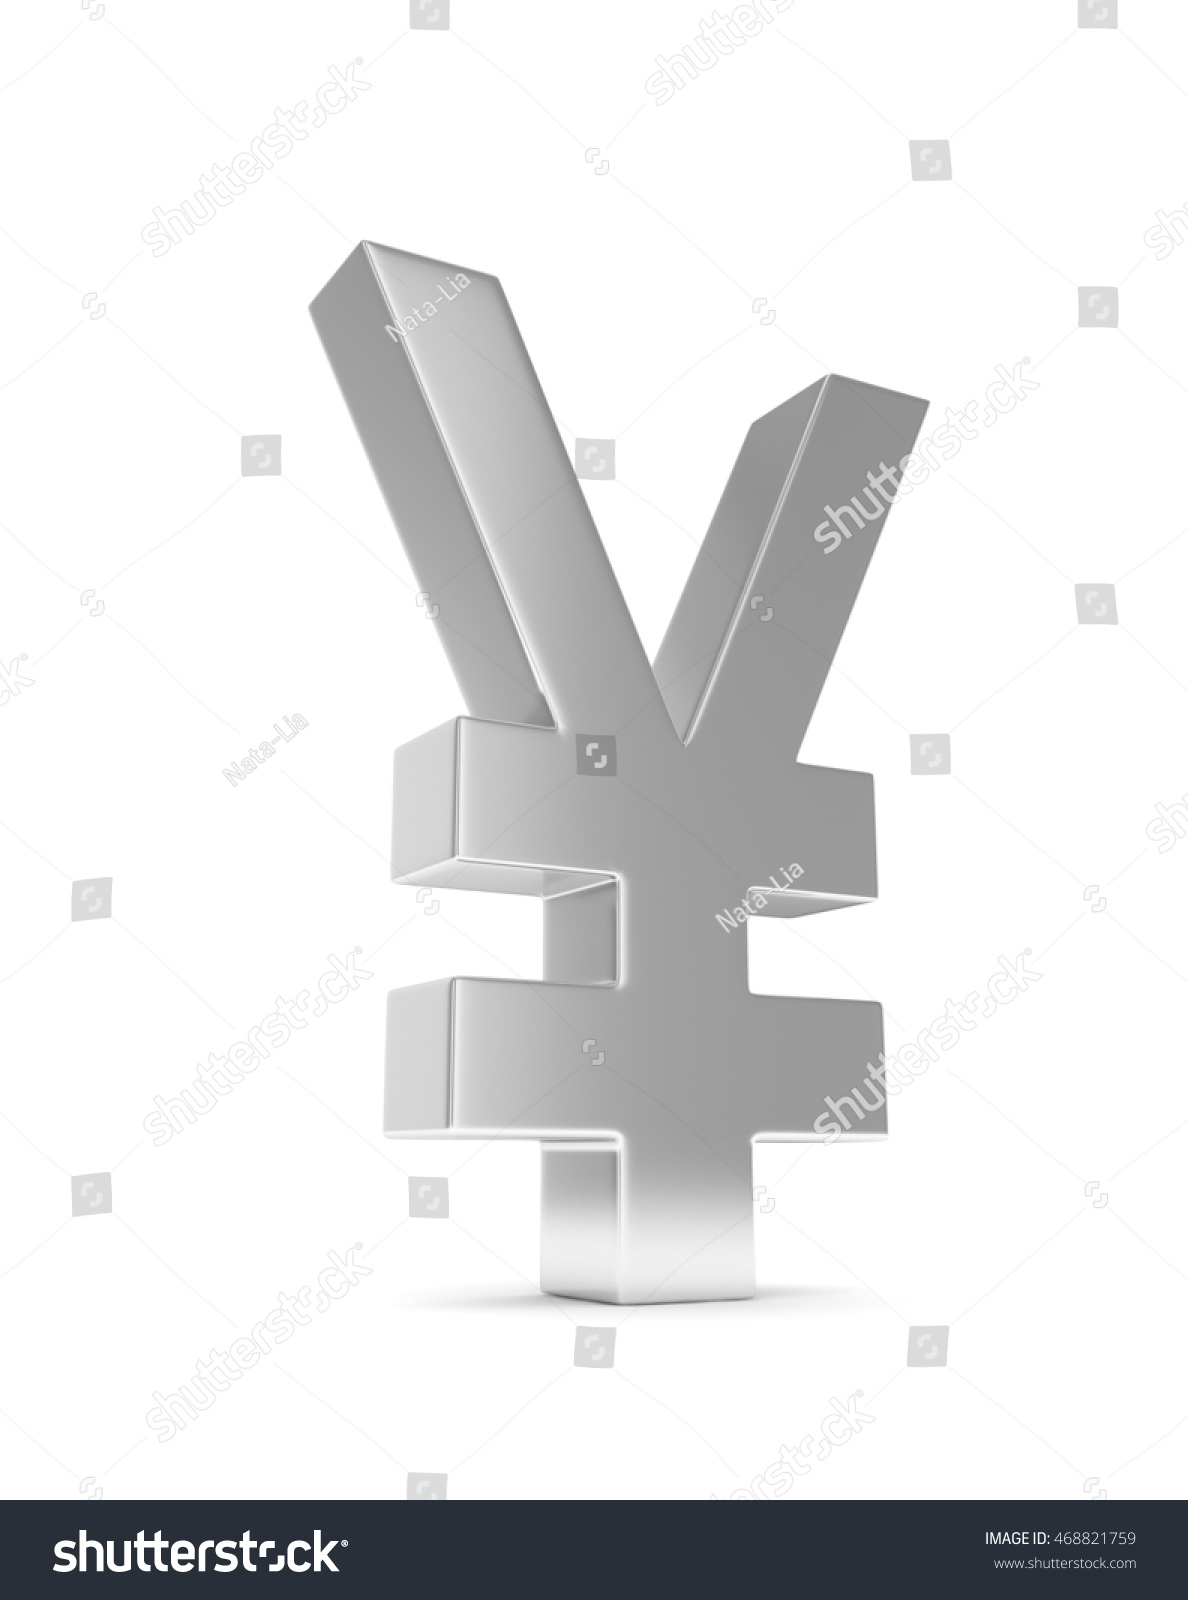 Isolated silver yen yuan sign on stock illustration 468821759 isolated silver yen yuan sign on white background chinese japanese currency concept of investment buycottarizona Images